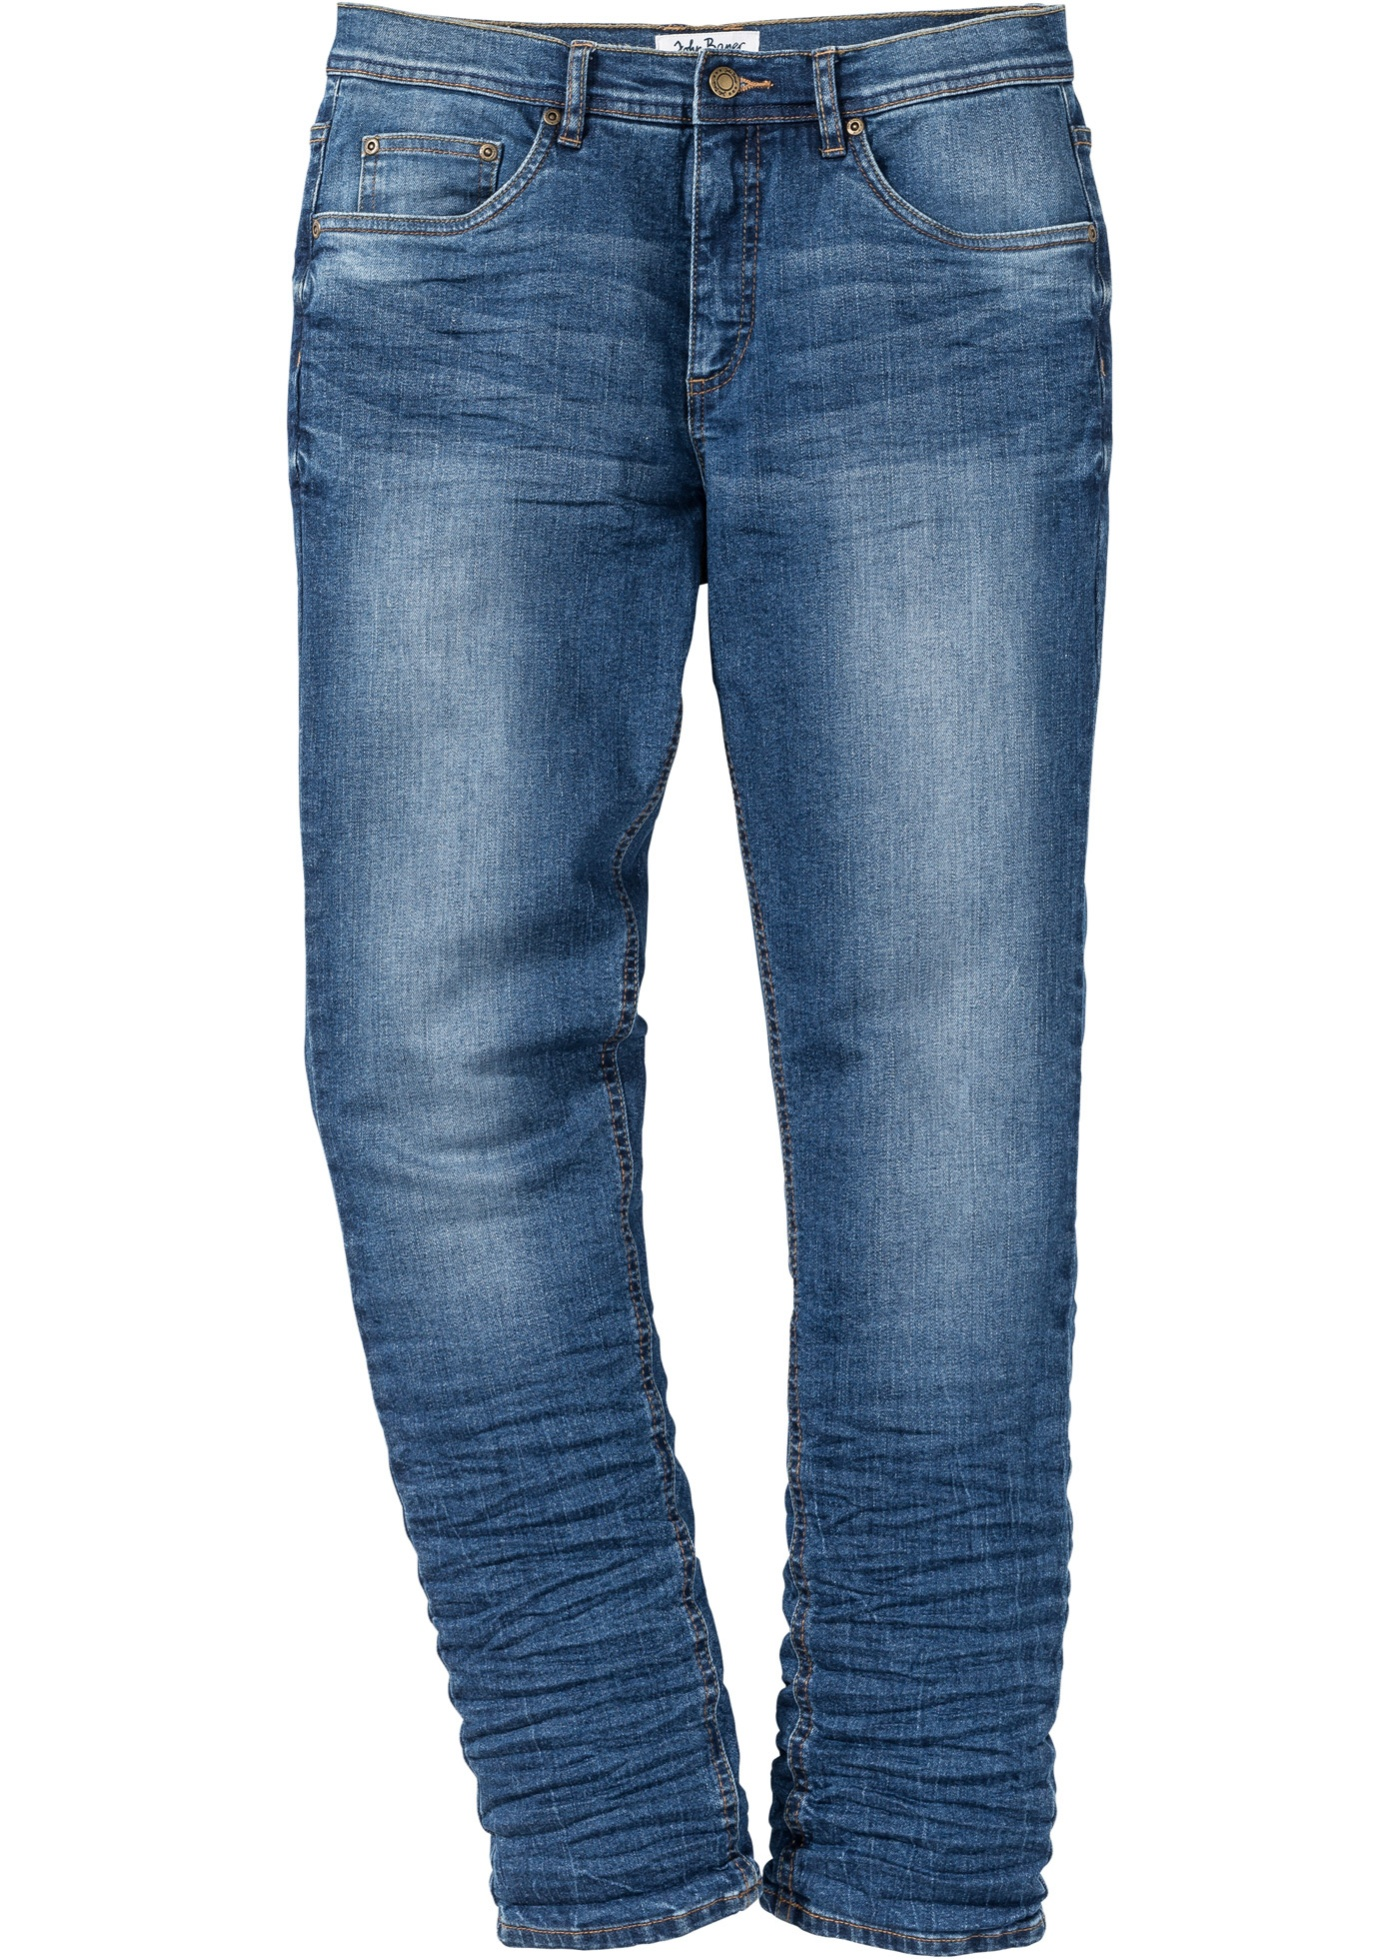 Herren bonprix Slim Fit Stretch-Jeans, Tapered blau | 08940000803961